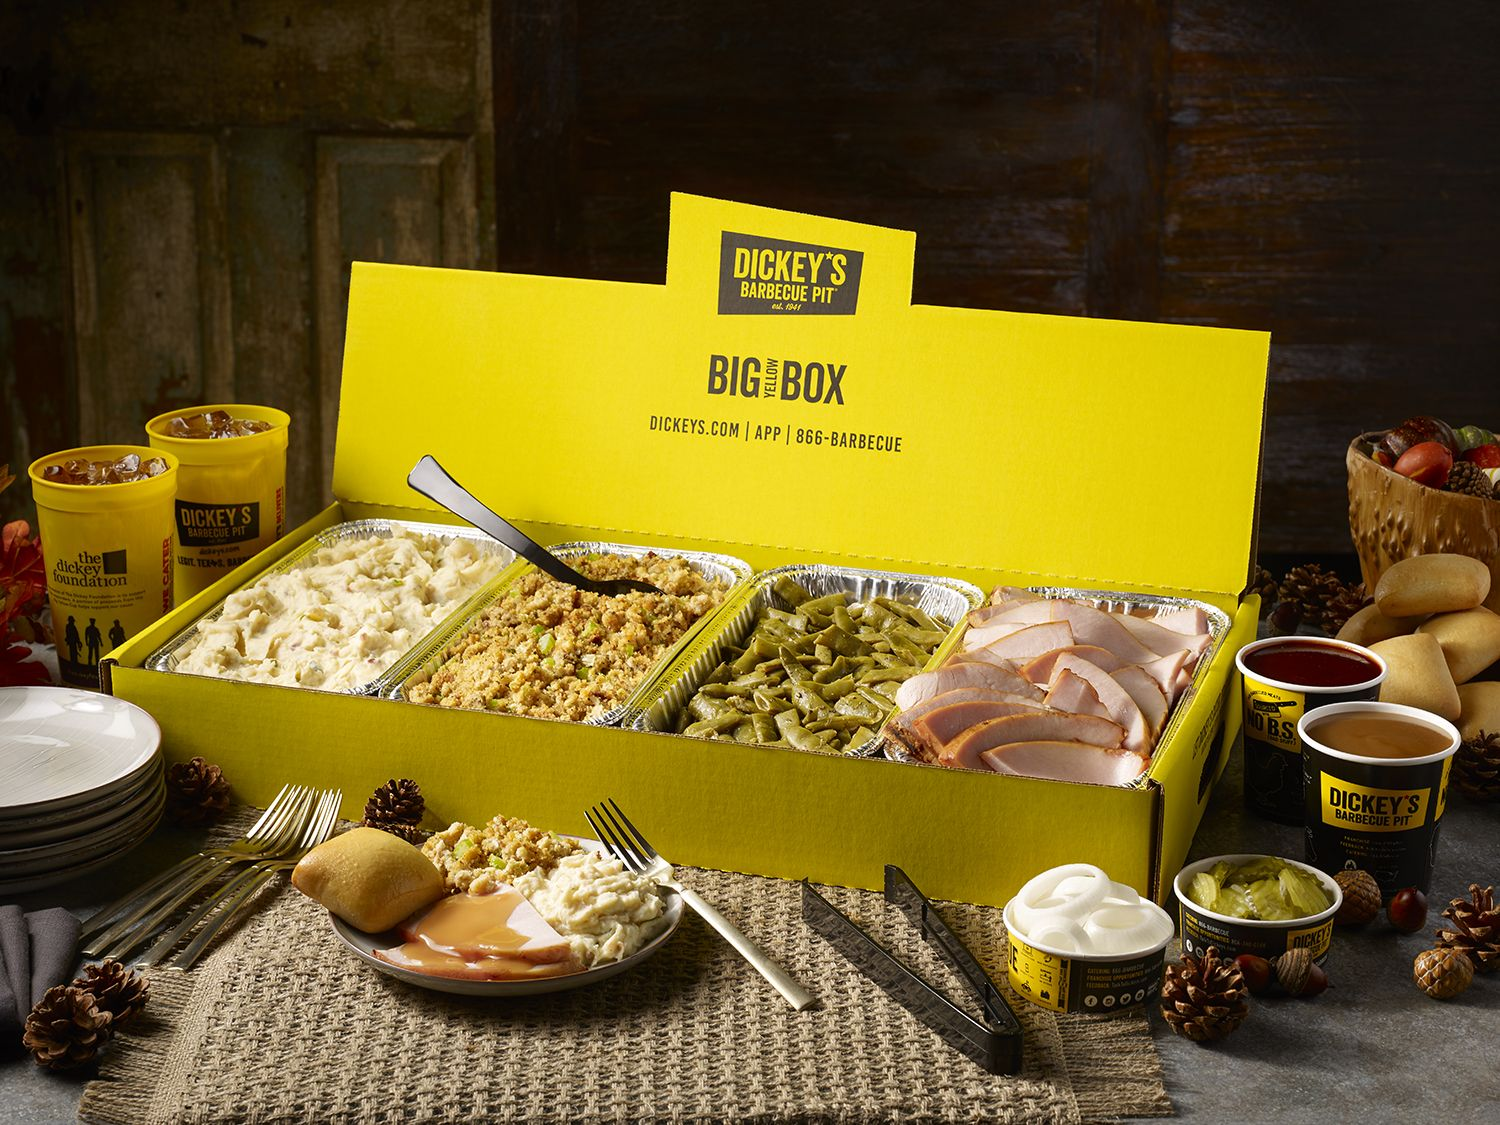 Dickey's Barbecue Pit Celebrates The Holiday Season With Free Pumpkin Pies